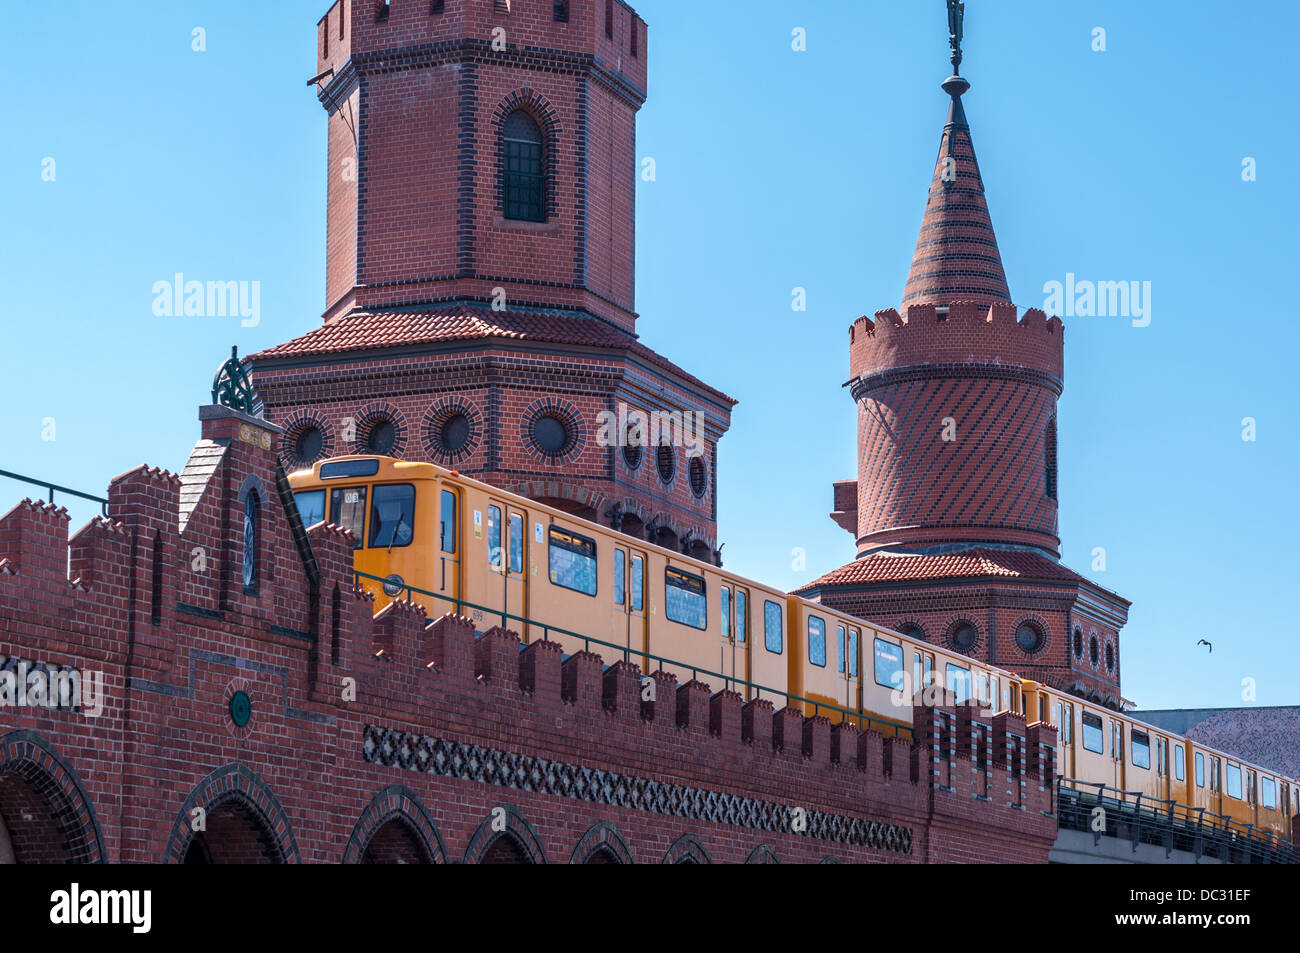 U-Bahn (subway) train traversing the Oberbaum Bruecke, Oberbaum Bridge, Berlin Germany. Stock Photo